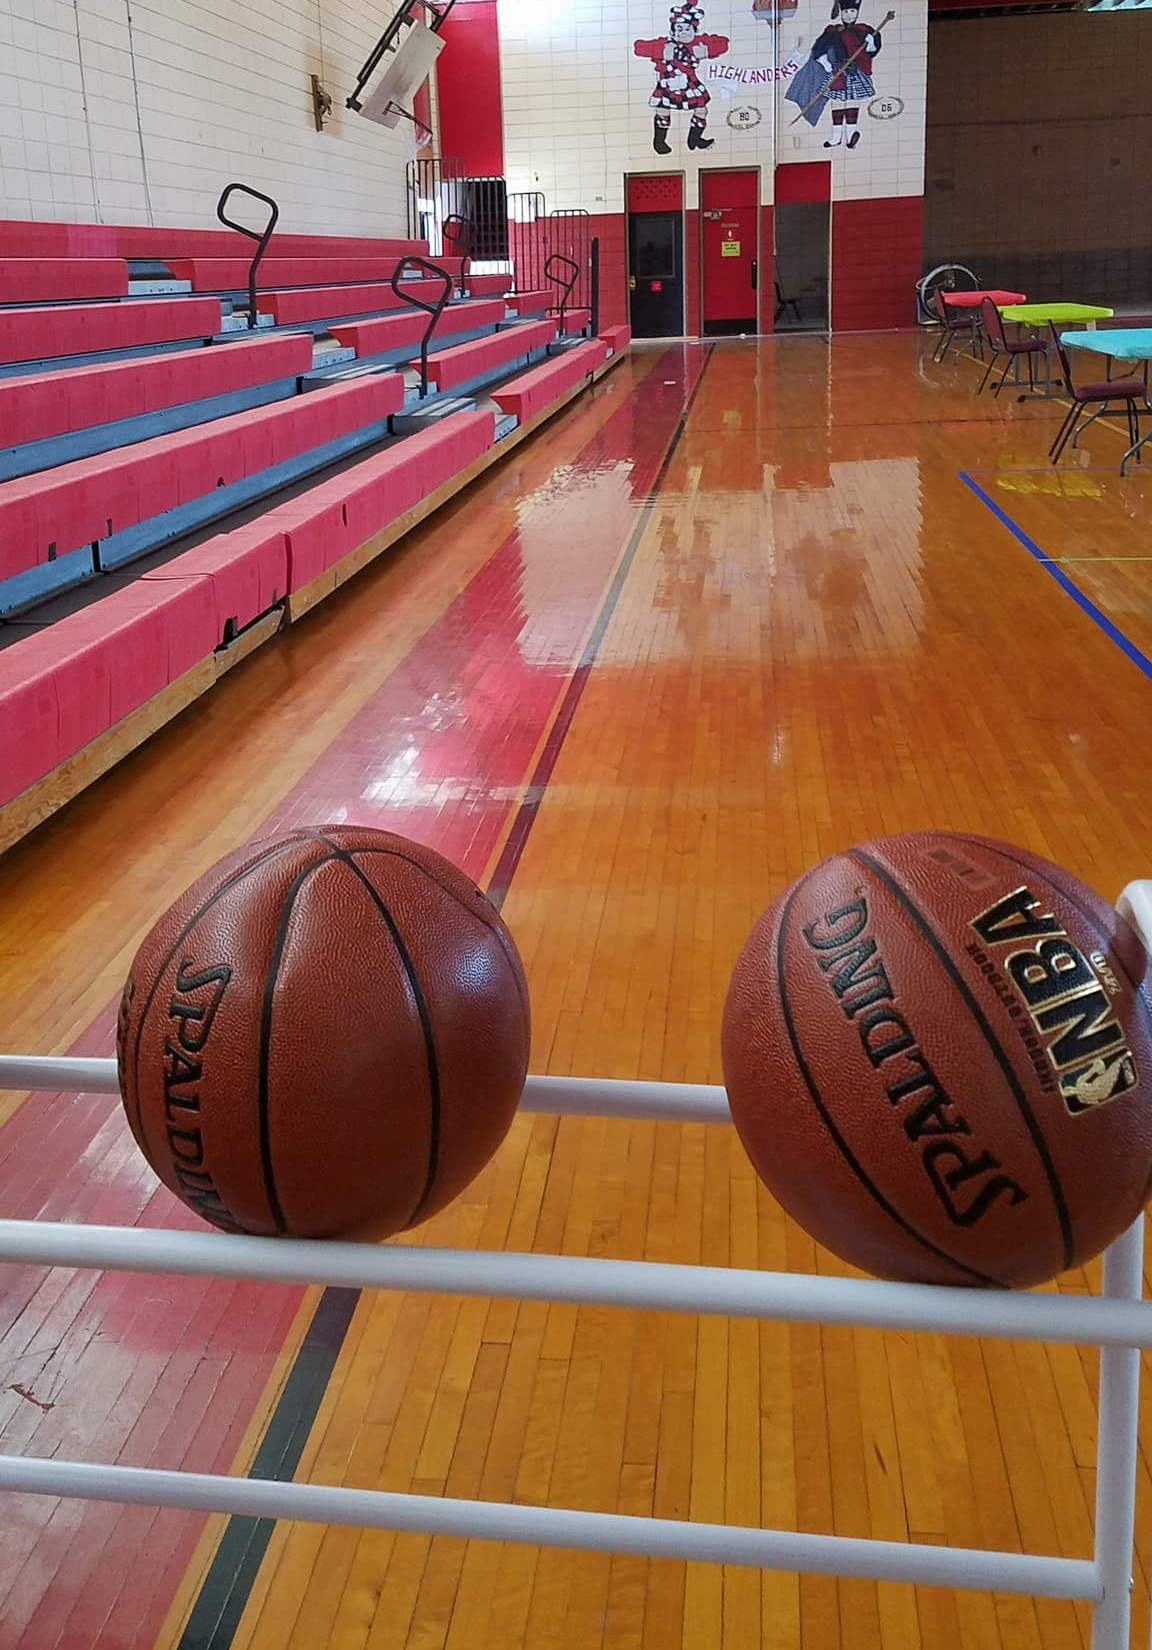 Gym - view of two basketballs in rack